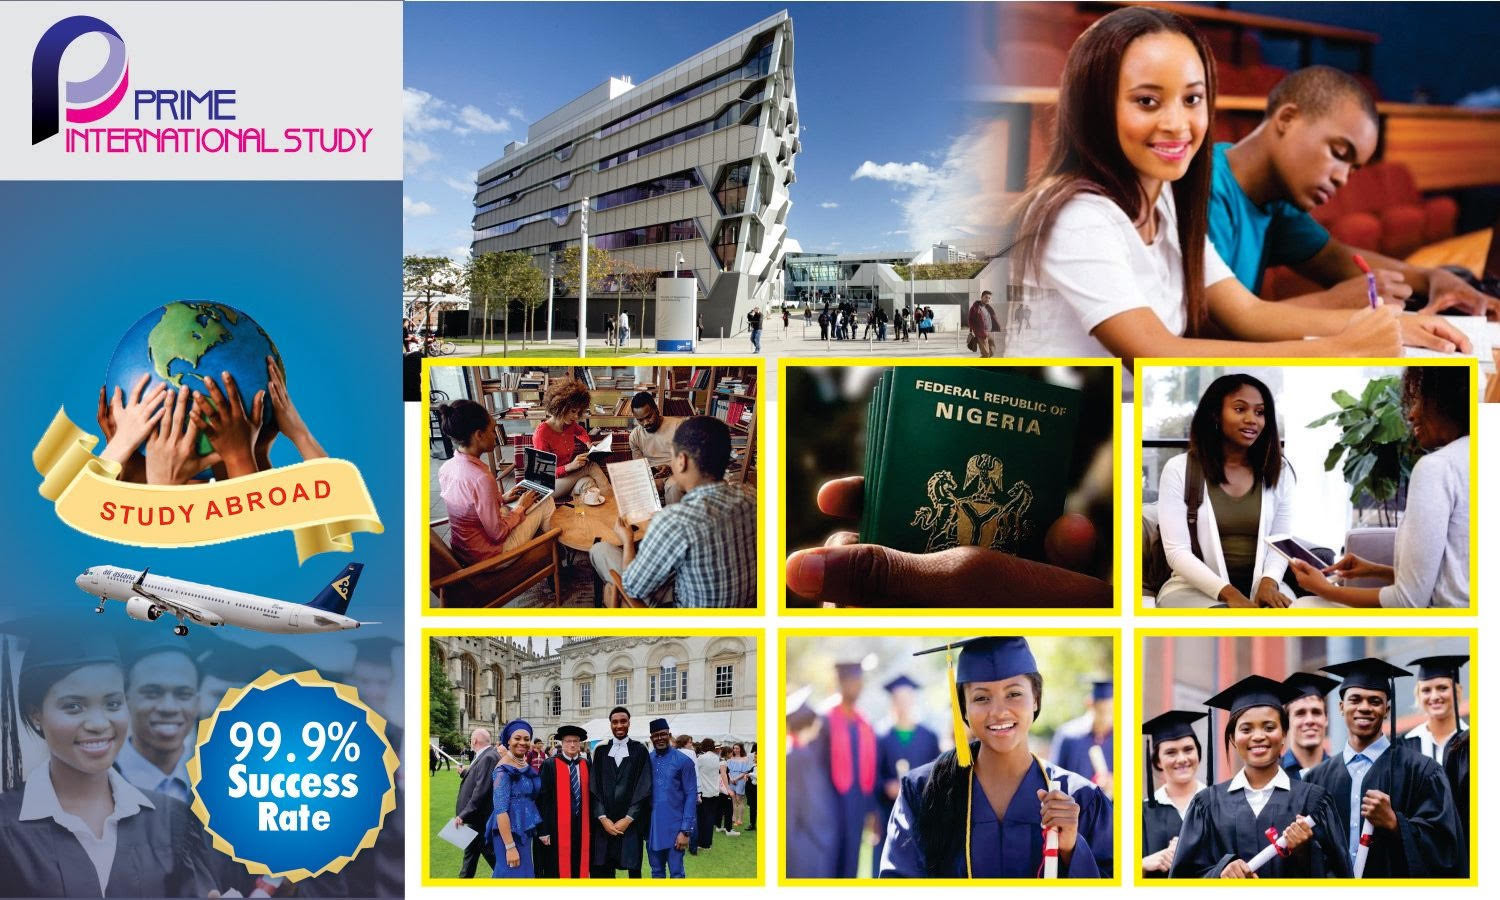 Study and Work abroad opportunities. Prime International Study (PIS) will help you process your admissions into affordable Universities